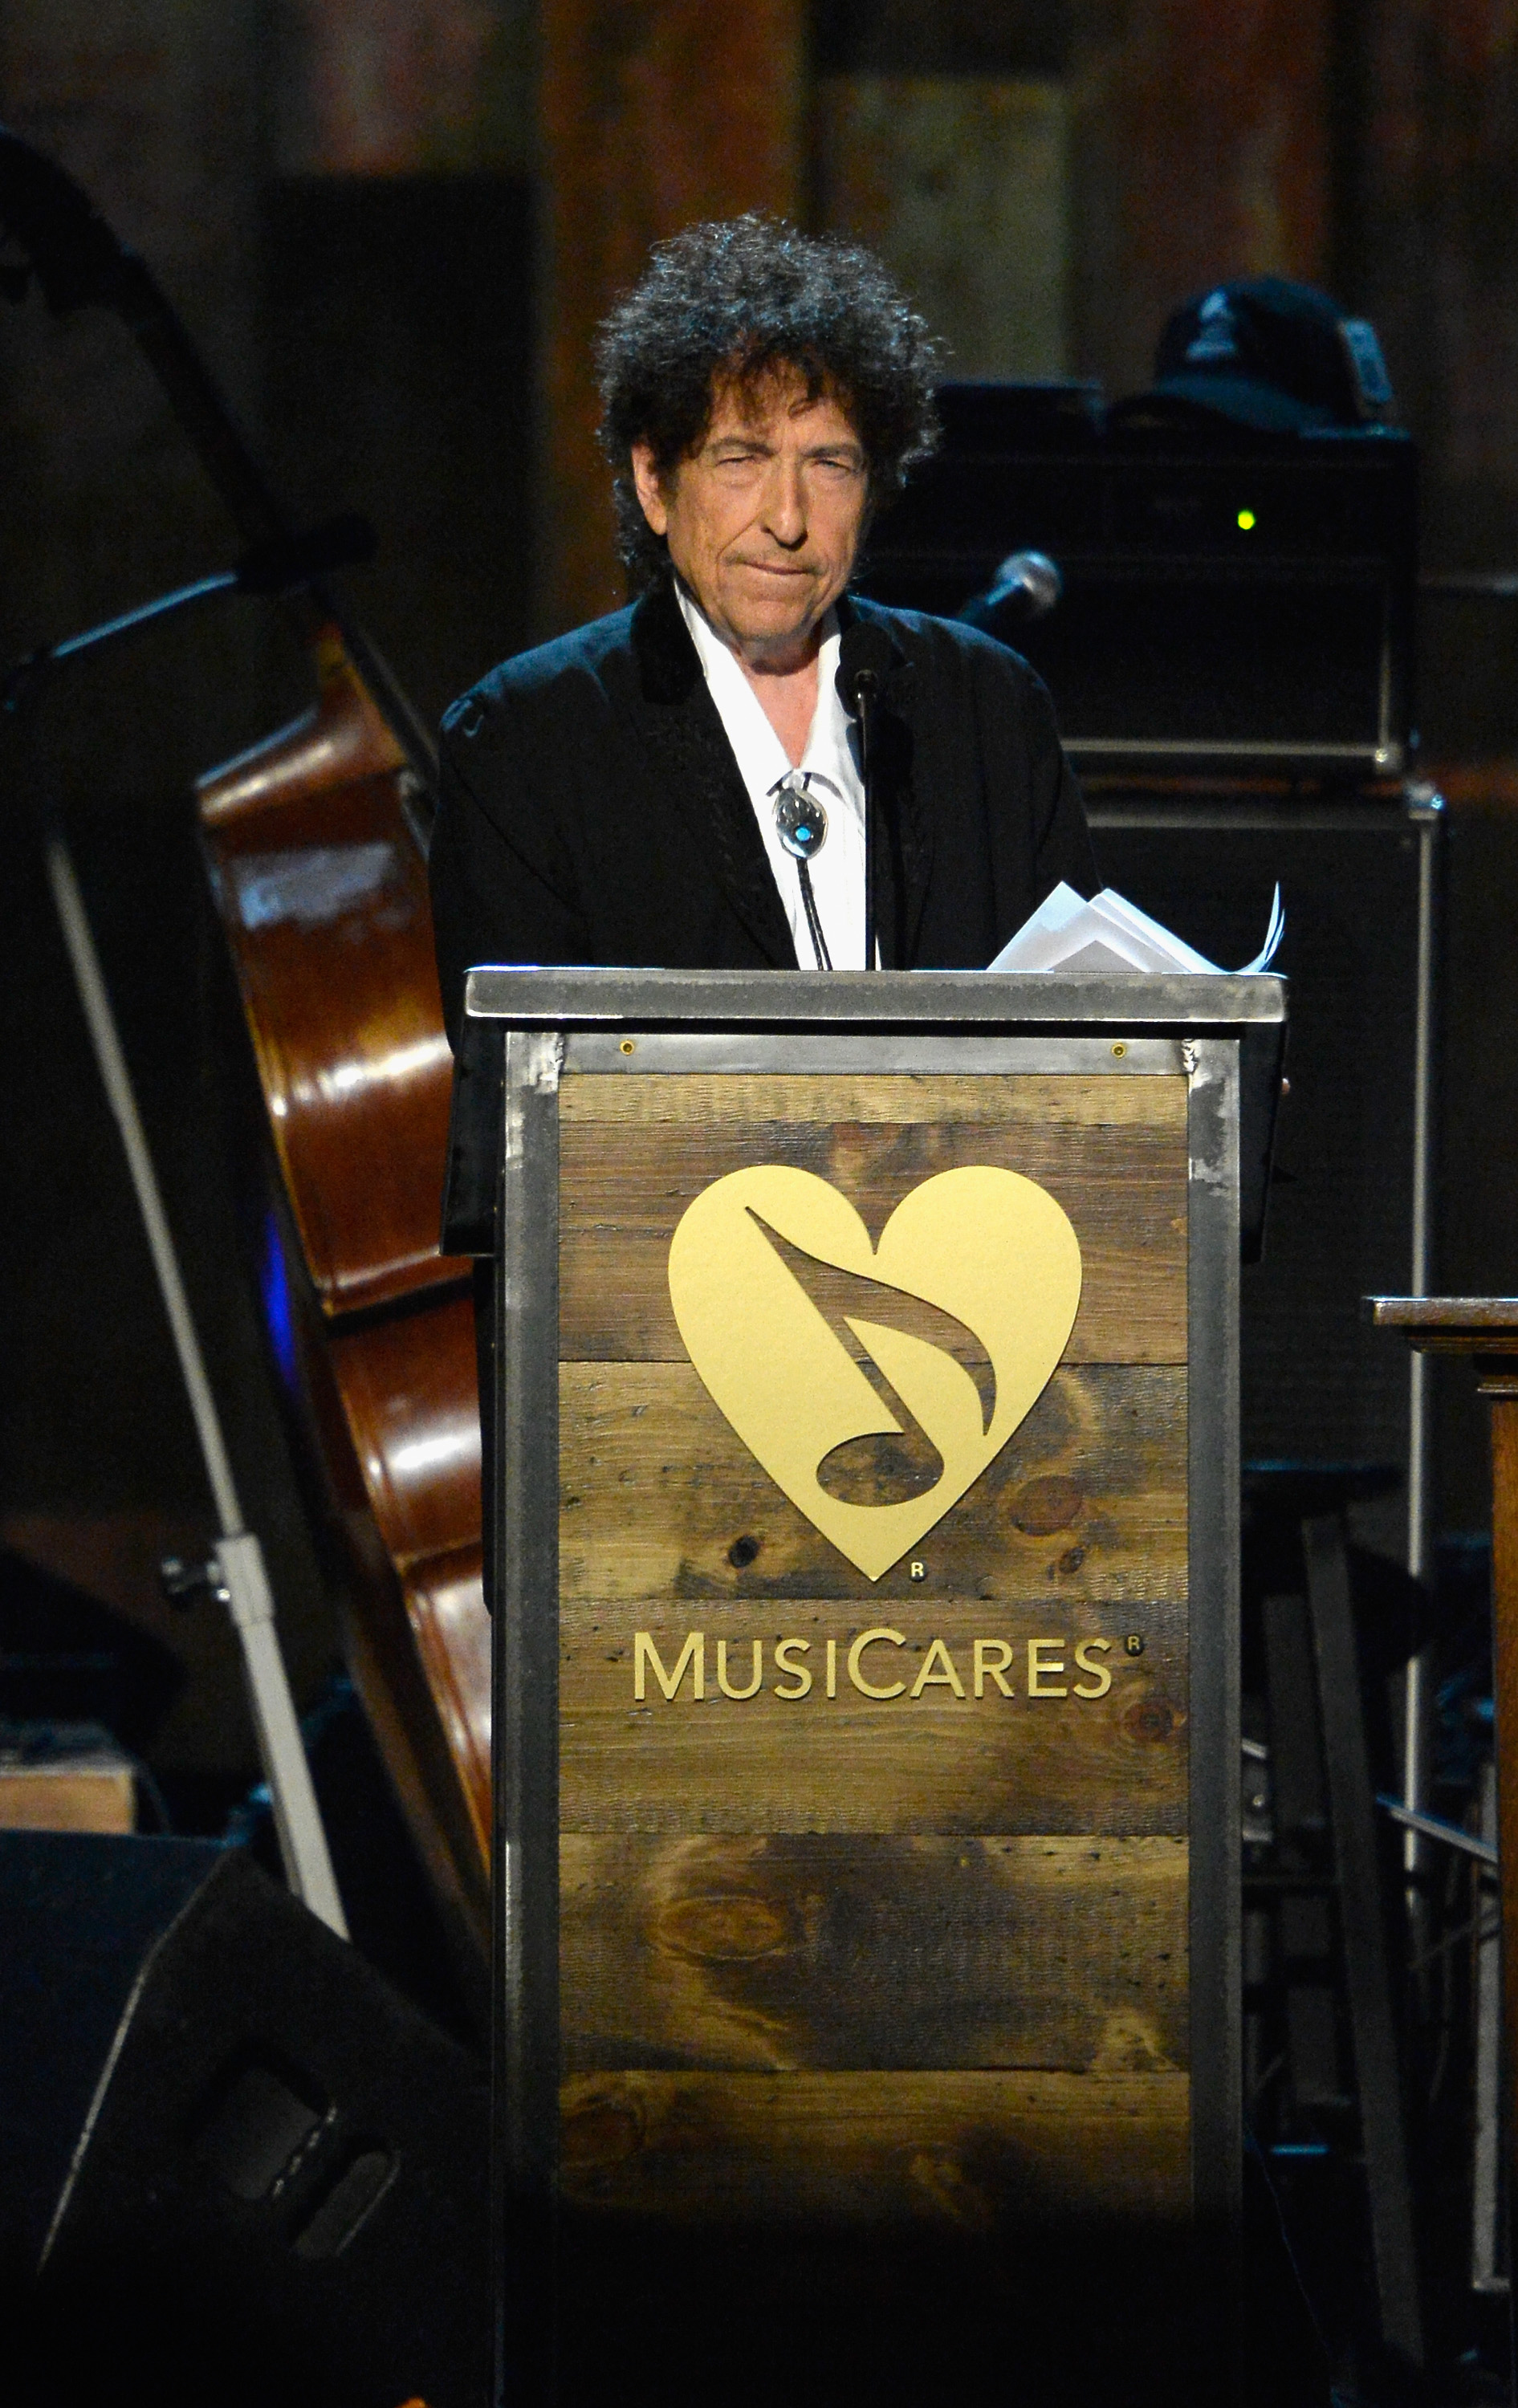 Why Does Bob Dylan Hate Merle Haggard A Musicares Speech Explainer